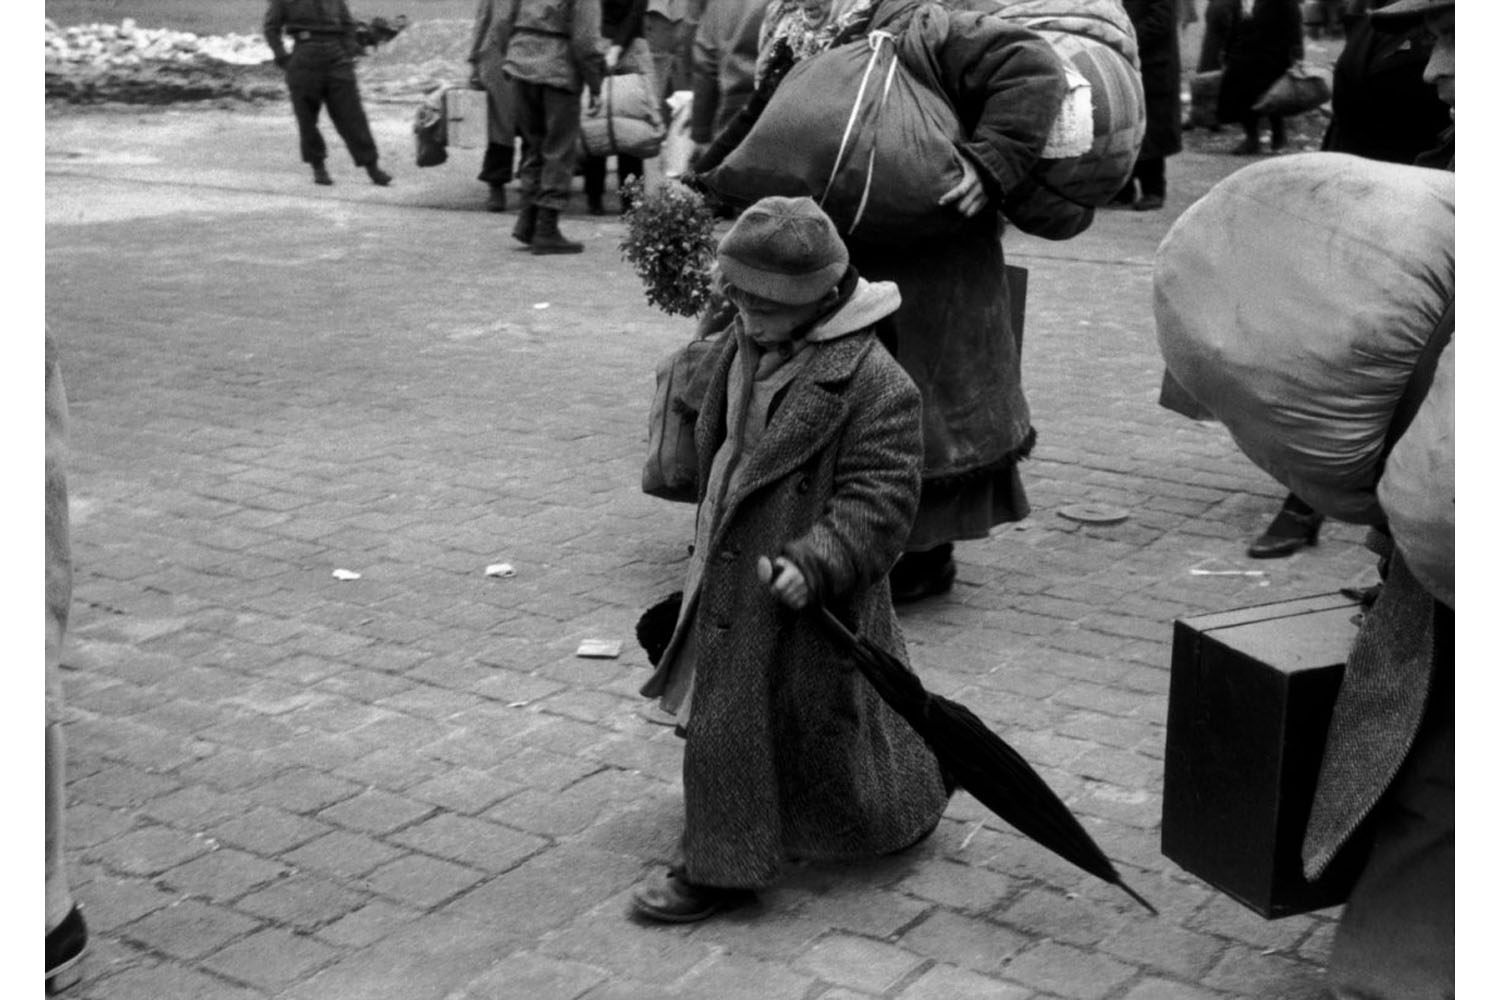 A Soviet child who was deported with his parents during the war at an Allied transit camp in Dessau, Germany, 1945.